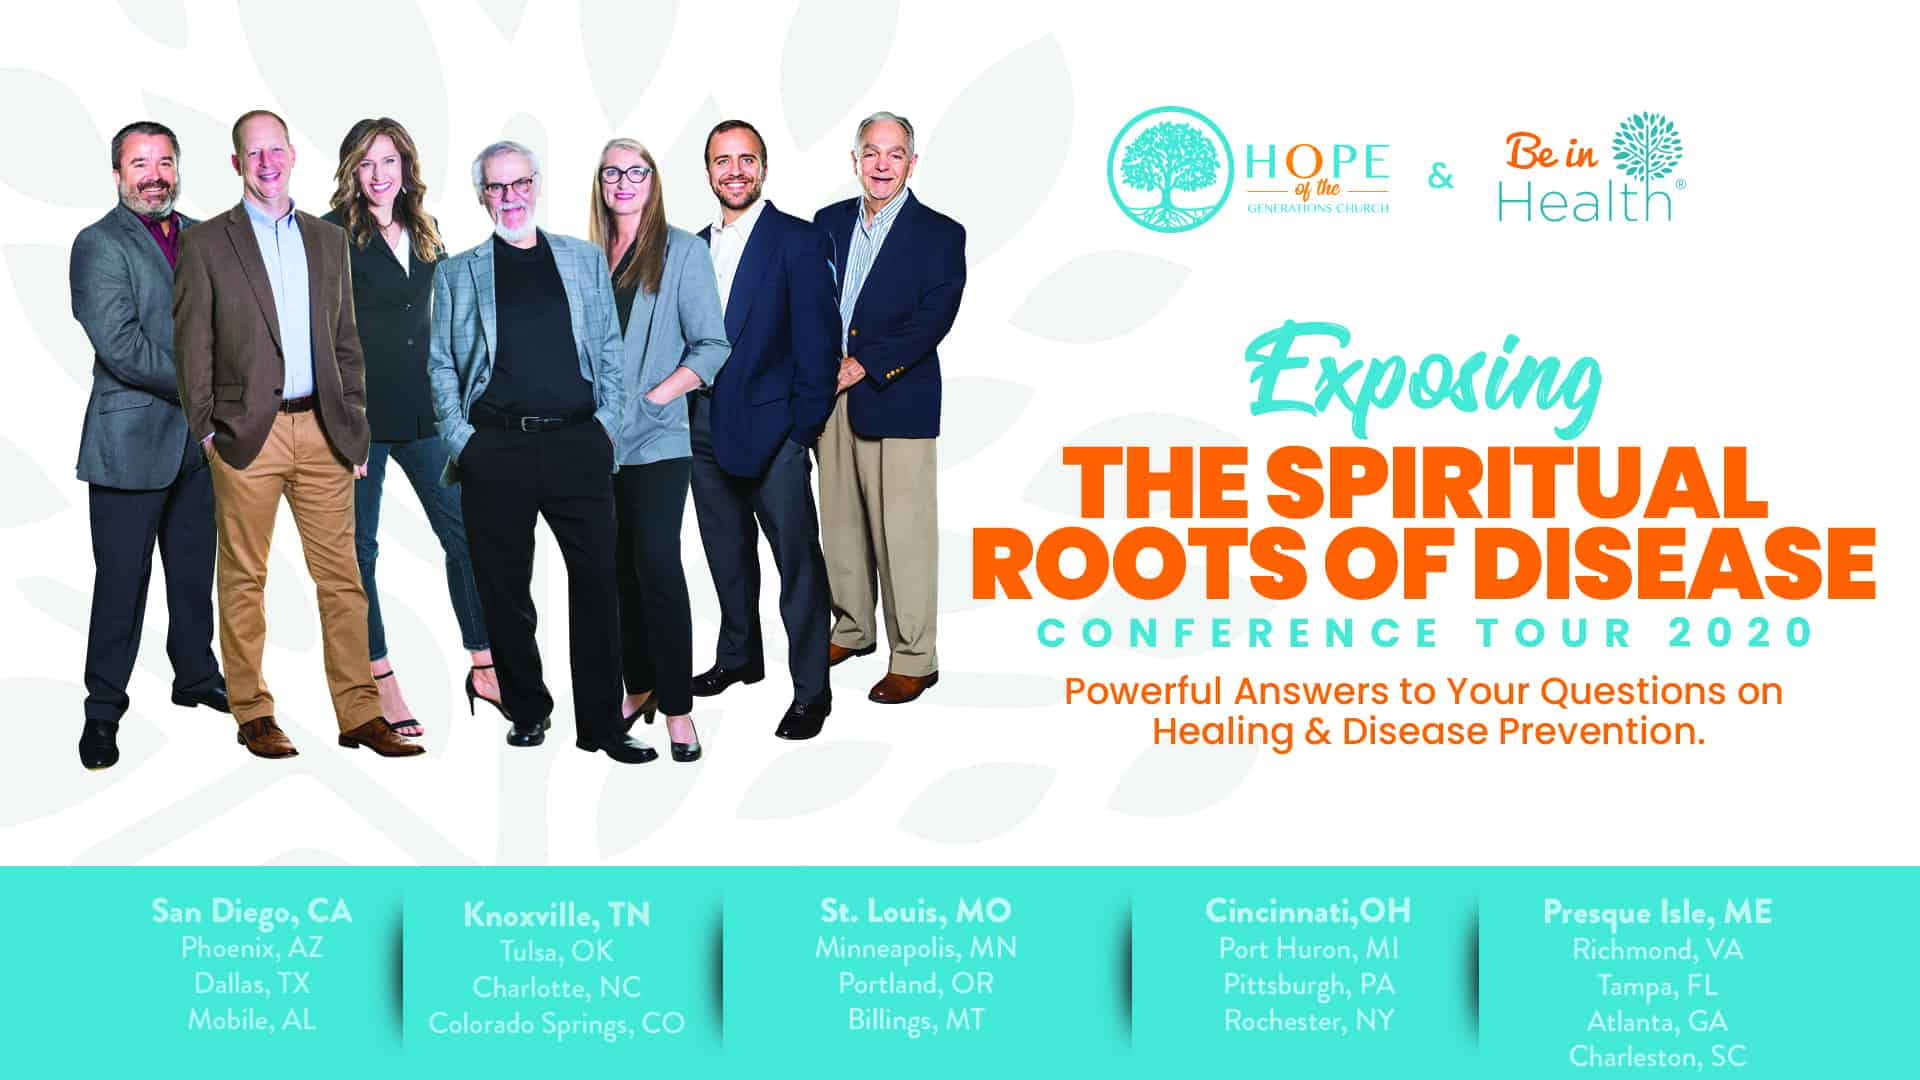 Exposing Spiritual Roots of Disease Conference